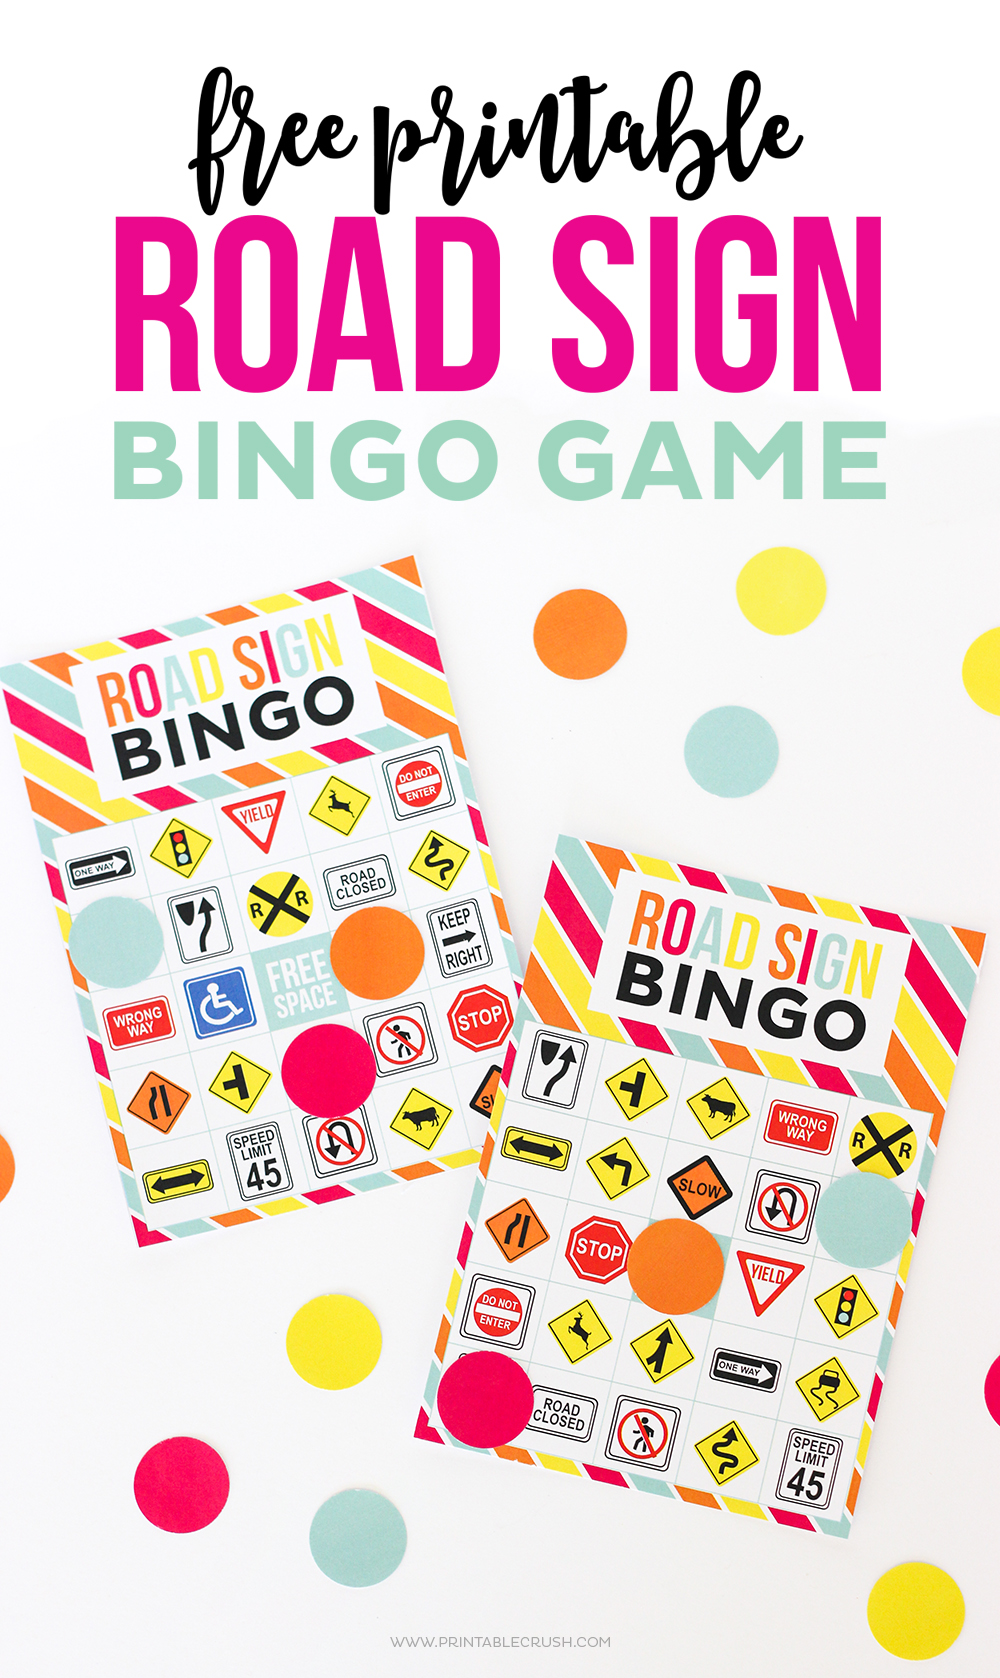 picture about Free Printable Road Signs called Totally free Printable Highway Indicator Bingo Video game - Printable Crush